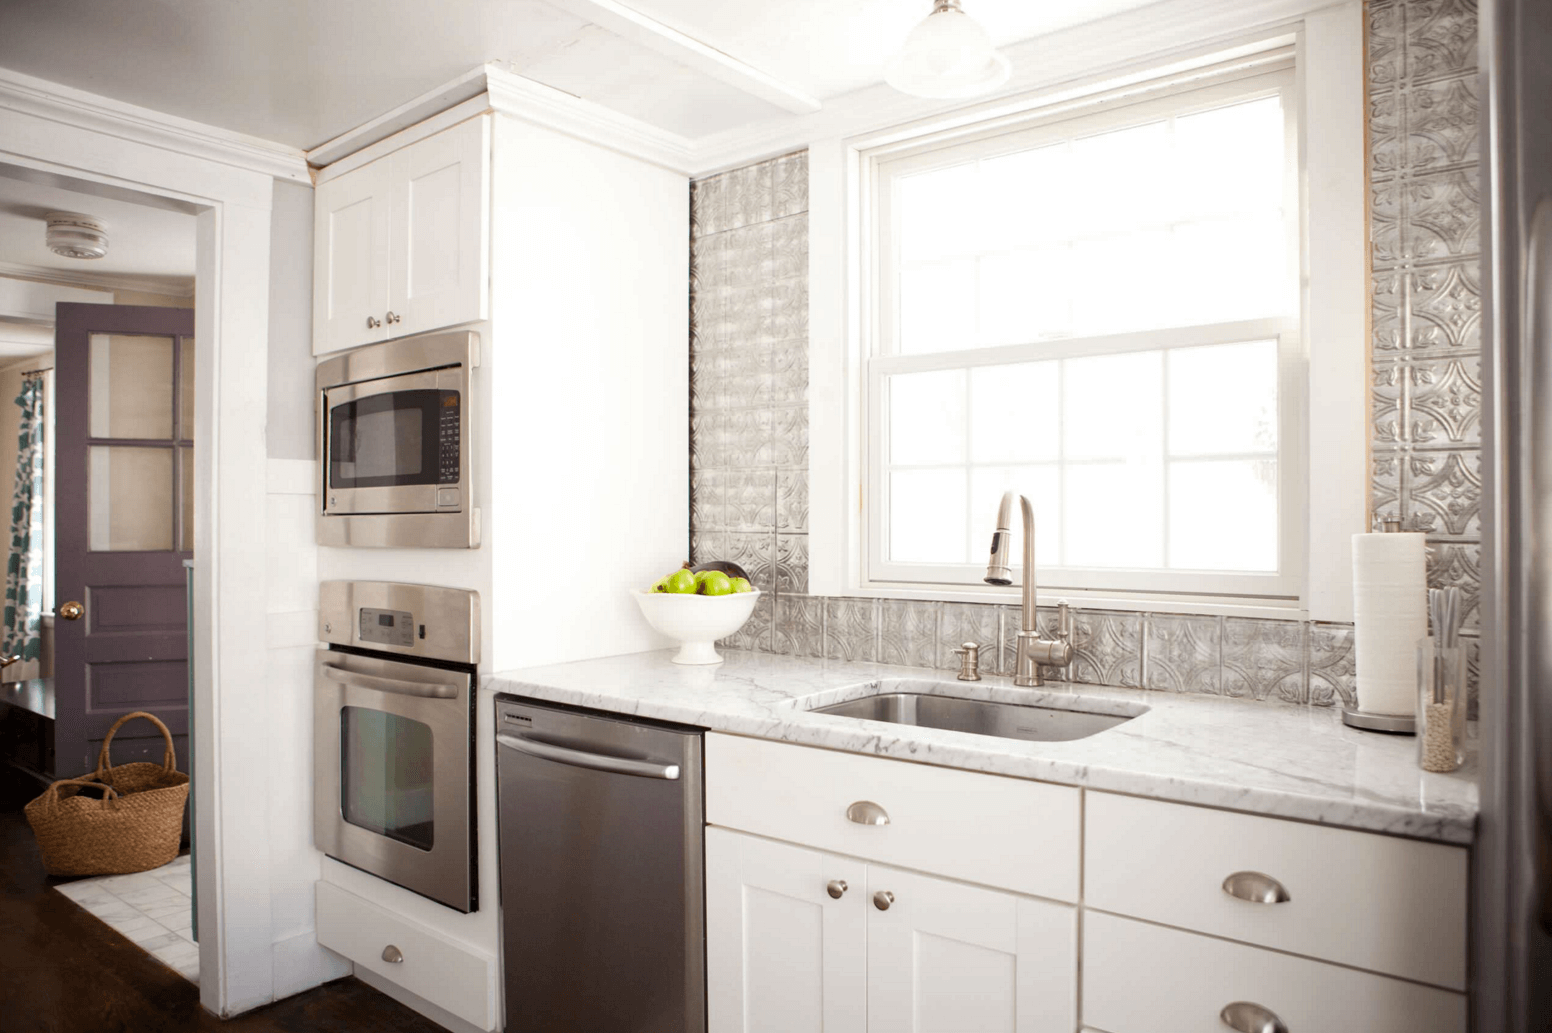 You Donu0027t Have To Do An Expensive Remodel To Make Your Kitchen Appealing To  Buyers. If Youu0027re Starting With A Good Kitchen Space, Then Making A Few ...